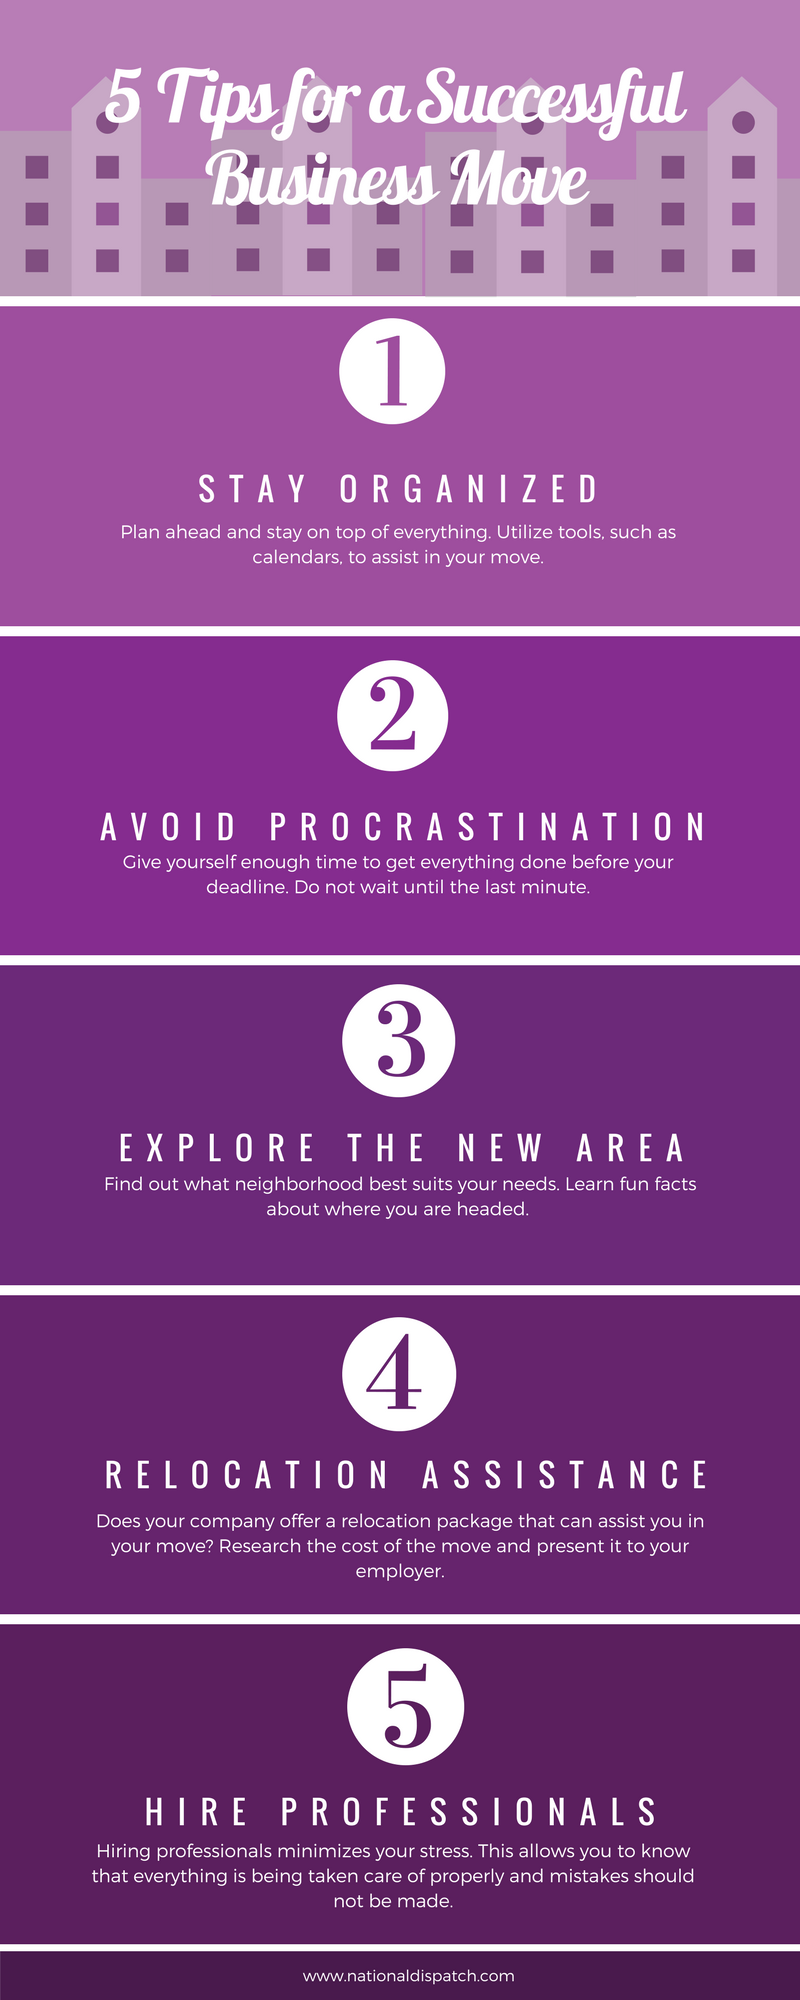 5 Tips for a Successful Business Move Infographic